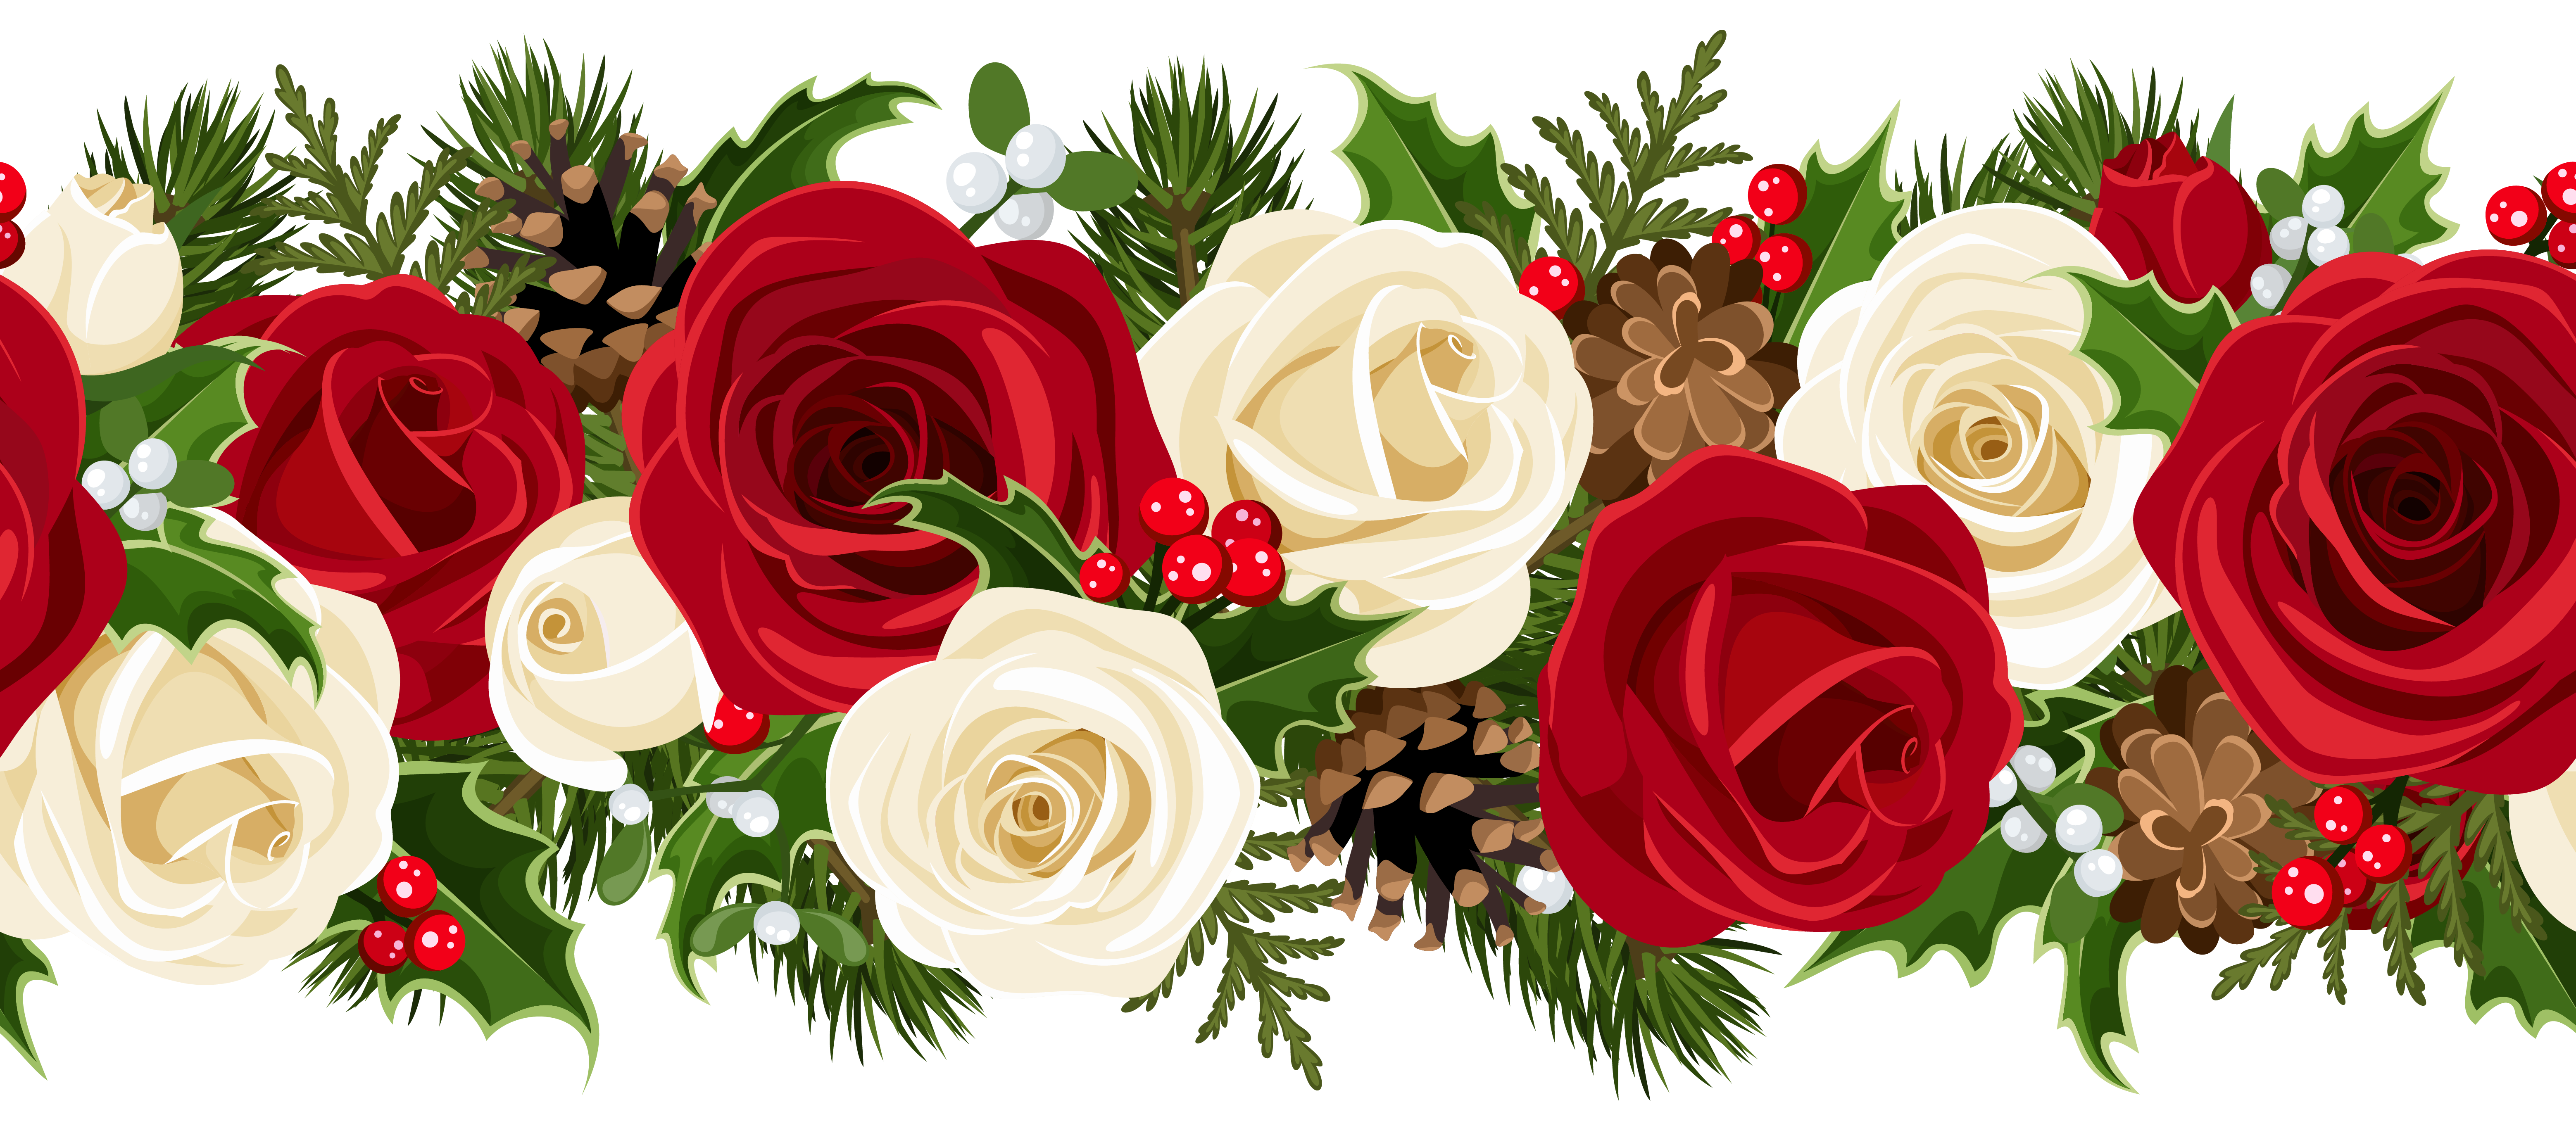 Christmas flower border clipart graphic royalty free Christmas Rose Garland PNG Clip Art Image | Gallery Yopriceville ... graphic royalty free